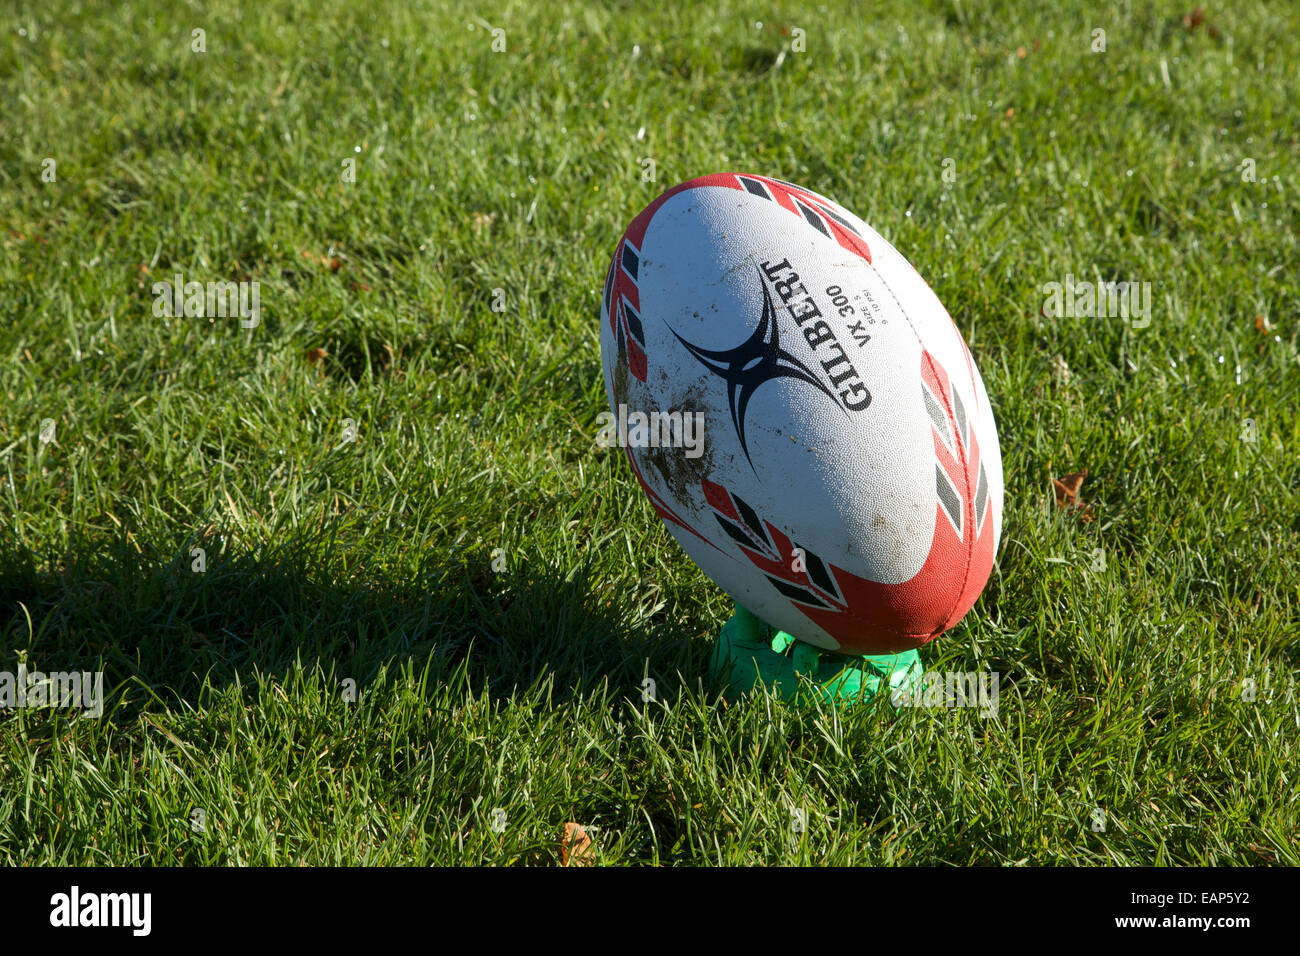 A Gilbert Rugby Ball On A Kicking Tee Stock Photo Alamy